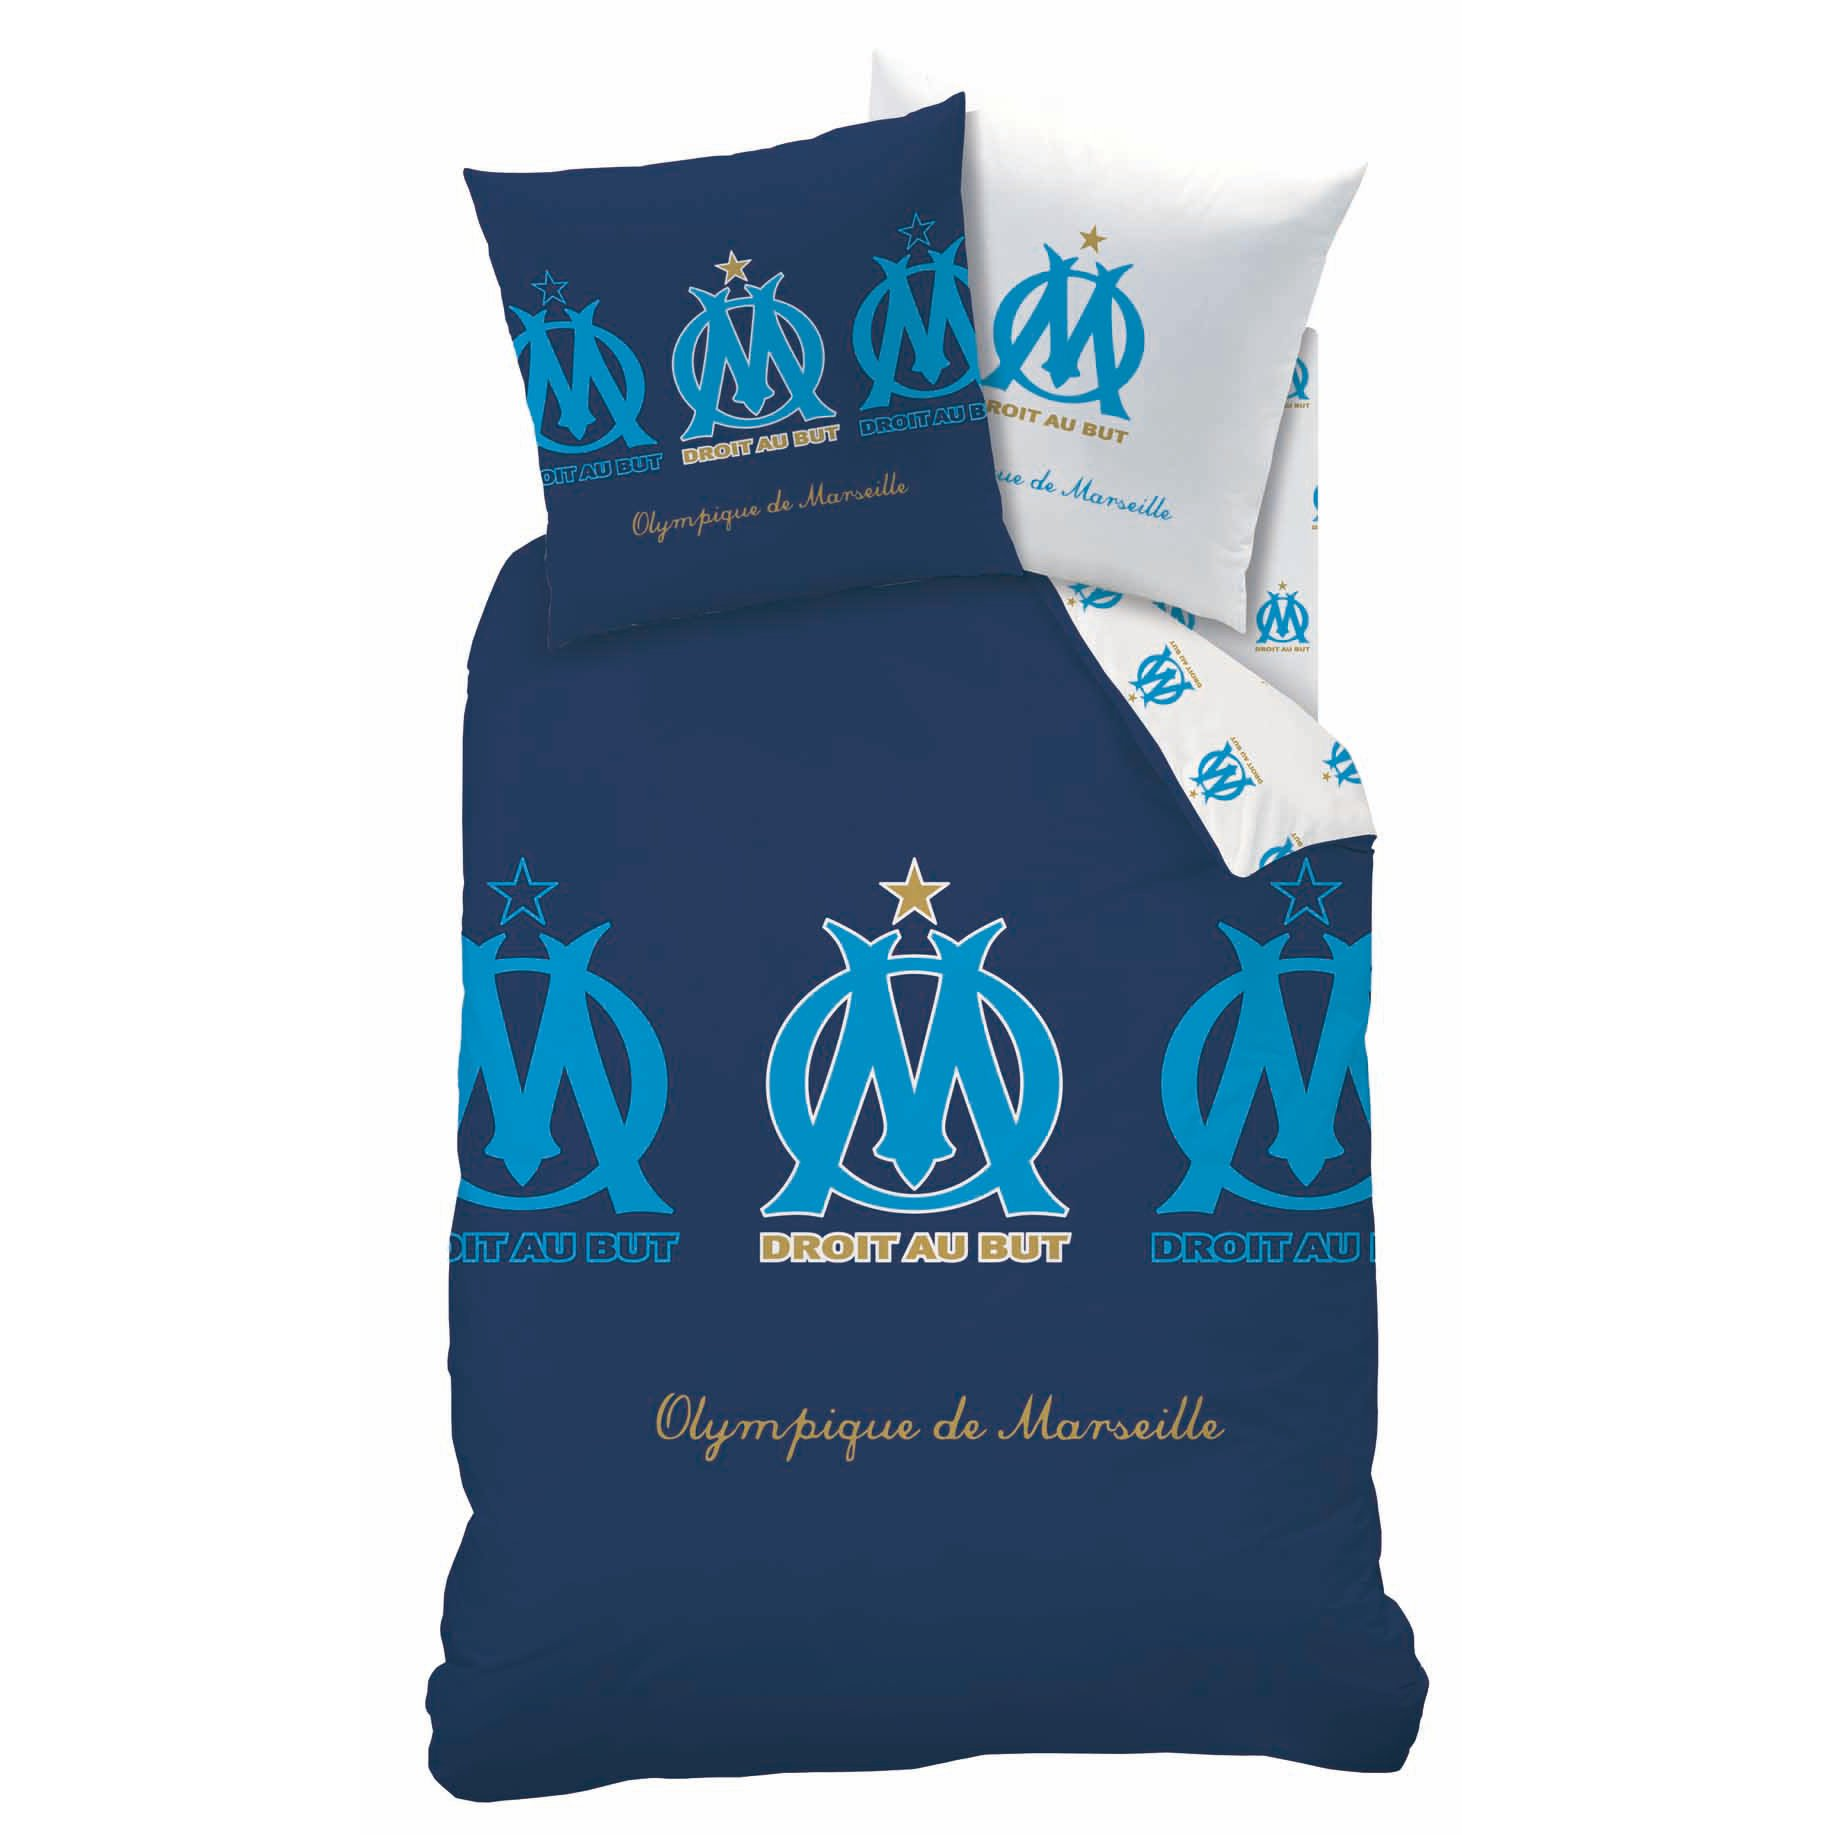 housse de couette om parure de lit 140 x 200 cm players olympique marseille decokids. Black Bedroom Furniture Sets. Home Design Ideas